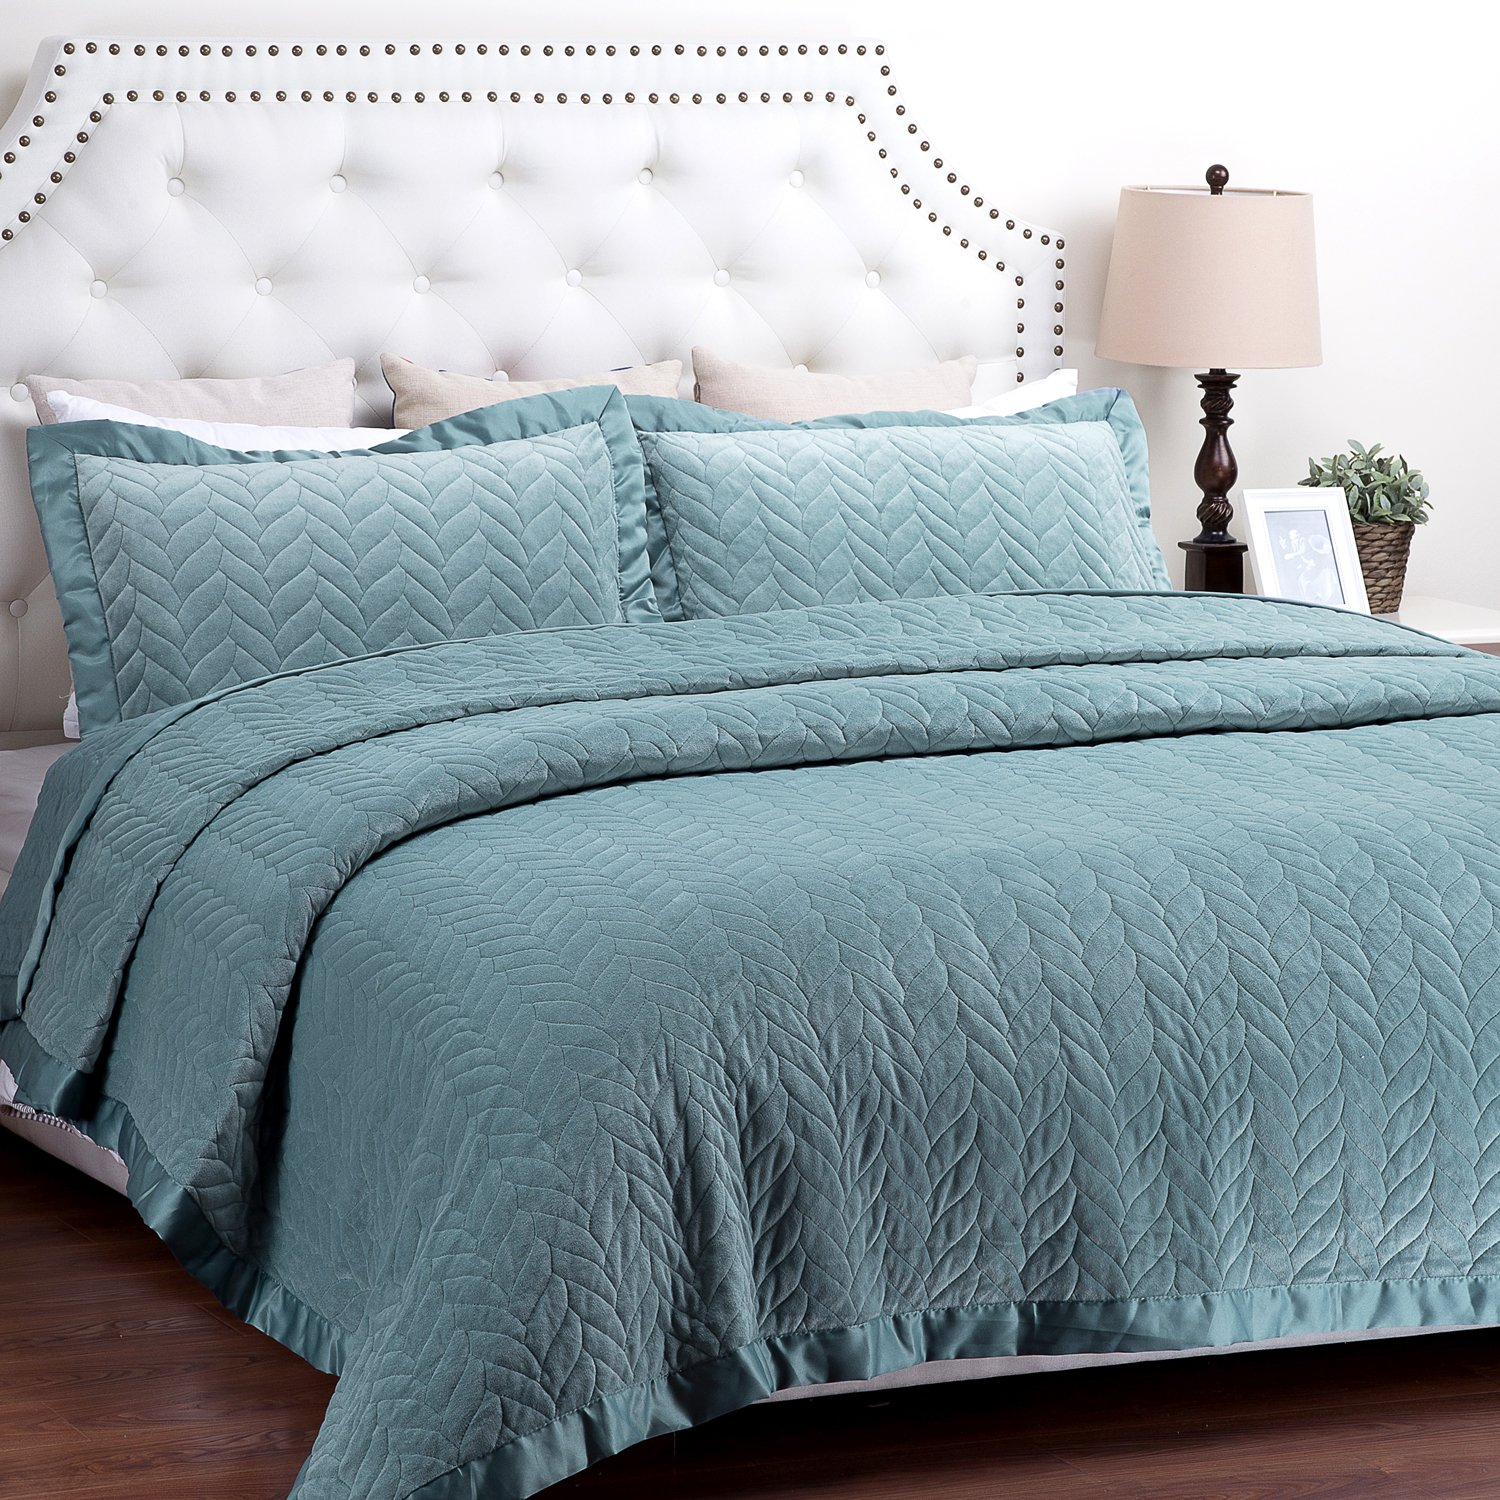 Turquoise Leaf Pattern Hypoallergenic All Season Lightweight by Bedsure